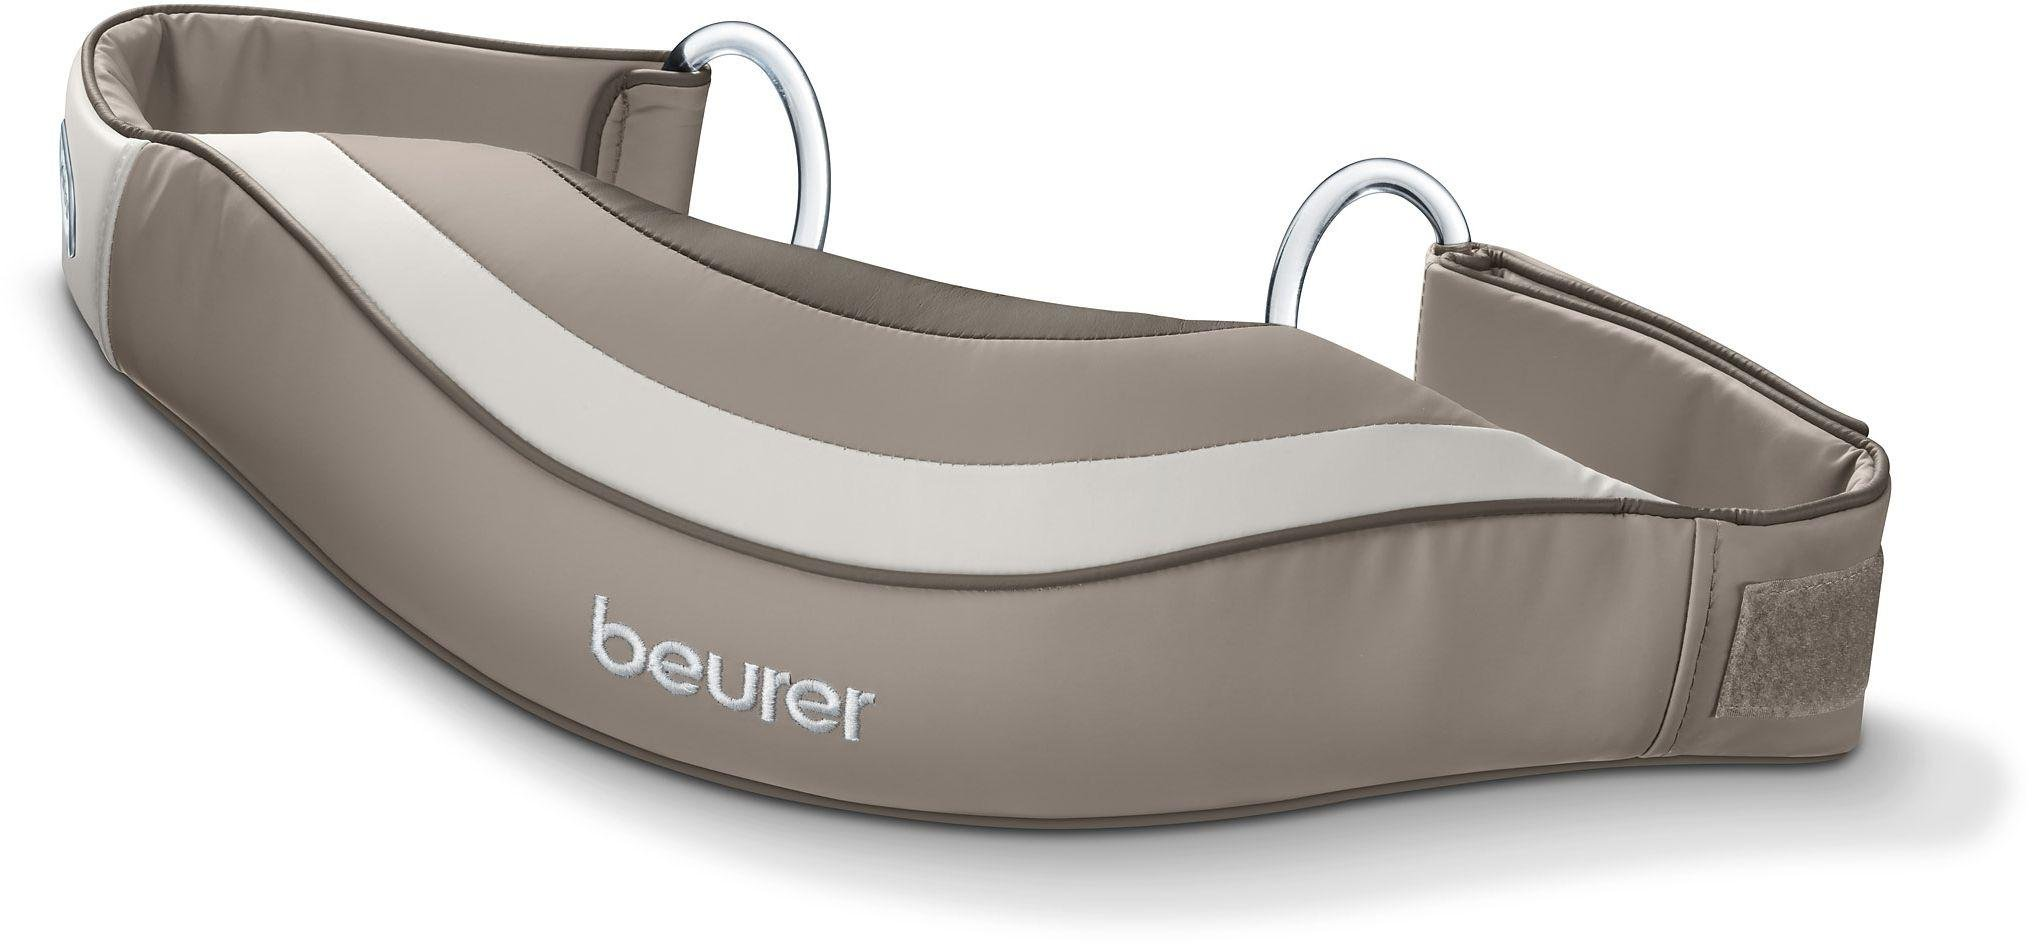 Beurer MG 148 Shiatsu Massage Belt.